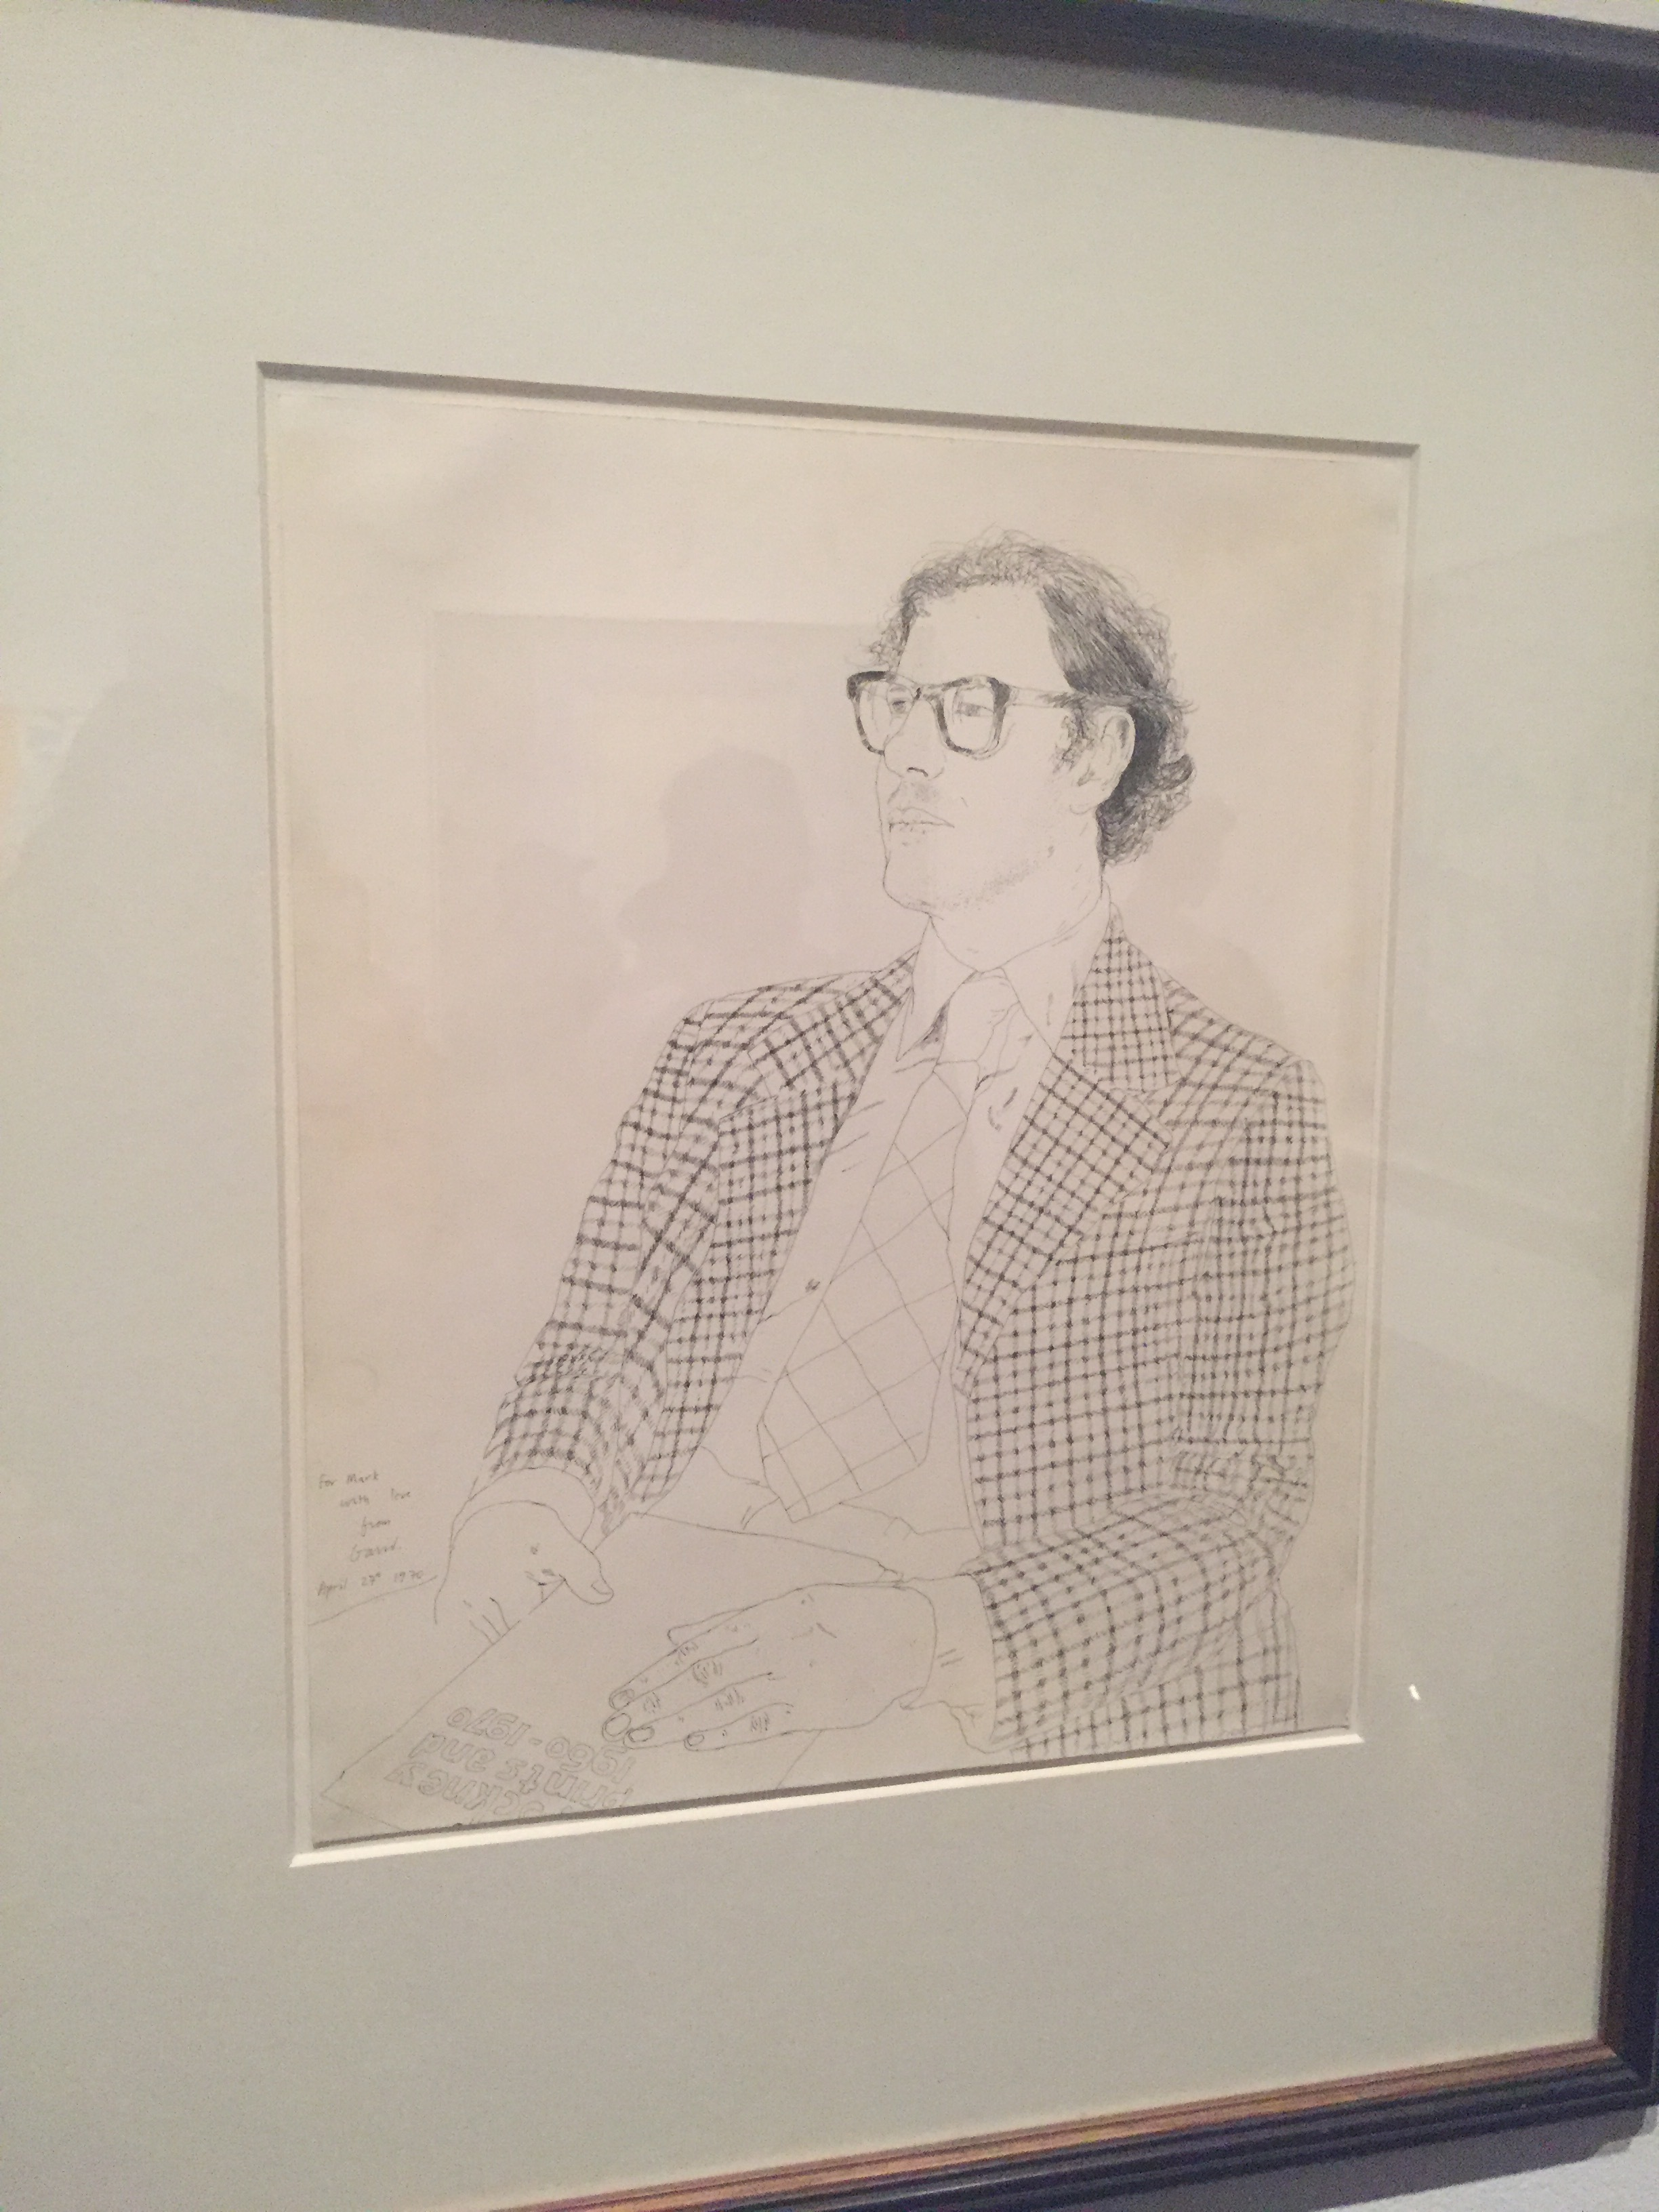 David Hockney Drawing.JPG